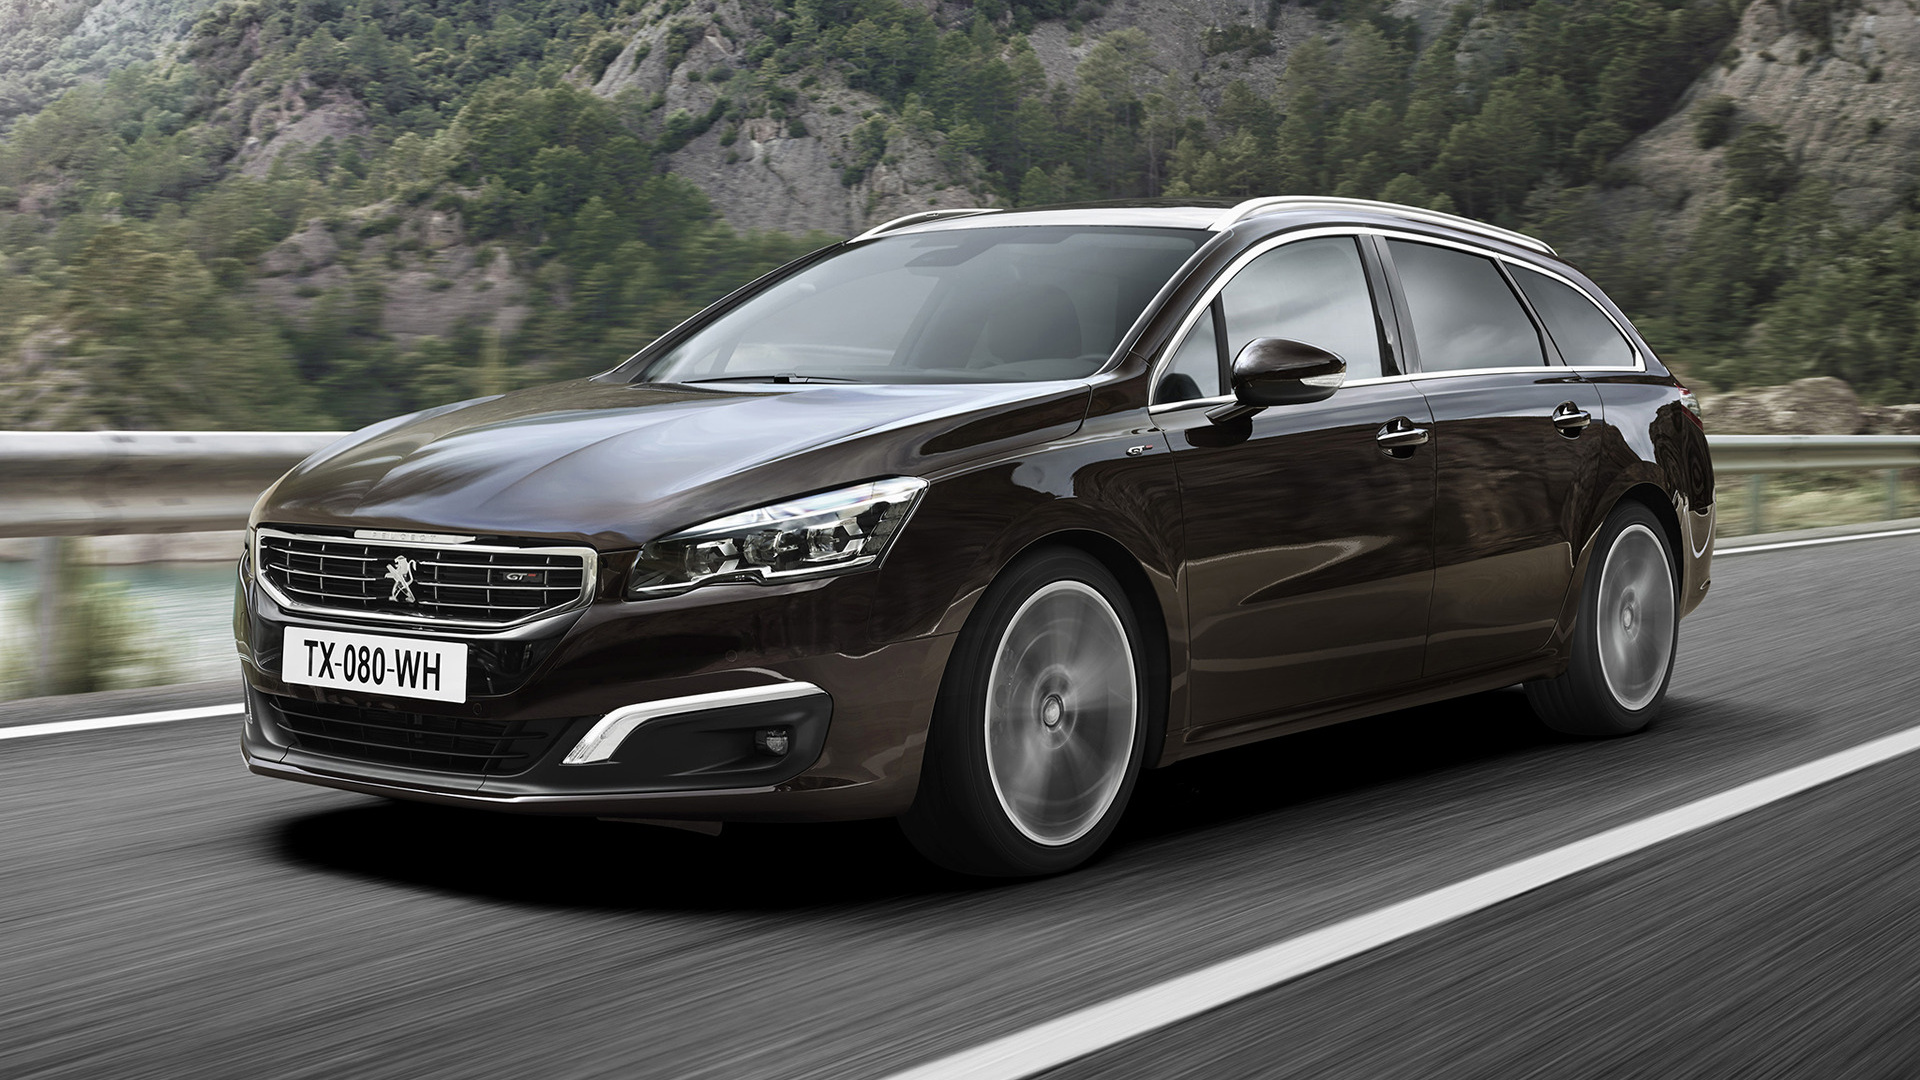 2014 Peugeot 508 Gt Sw Wallpapers And Hd Images Car Pixel